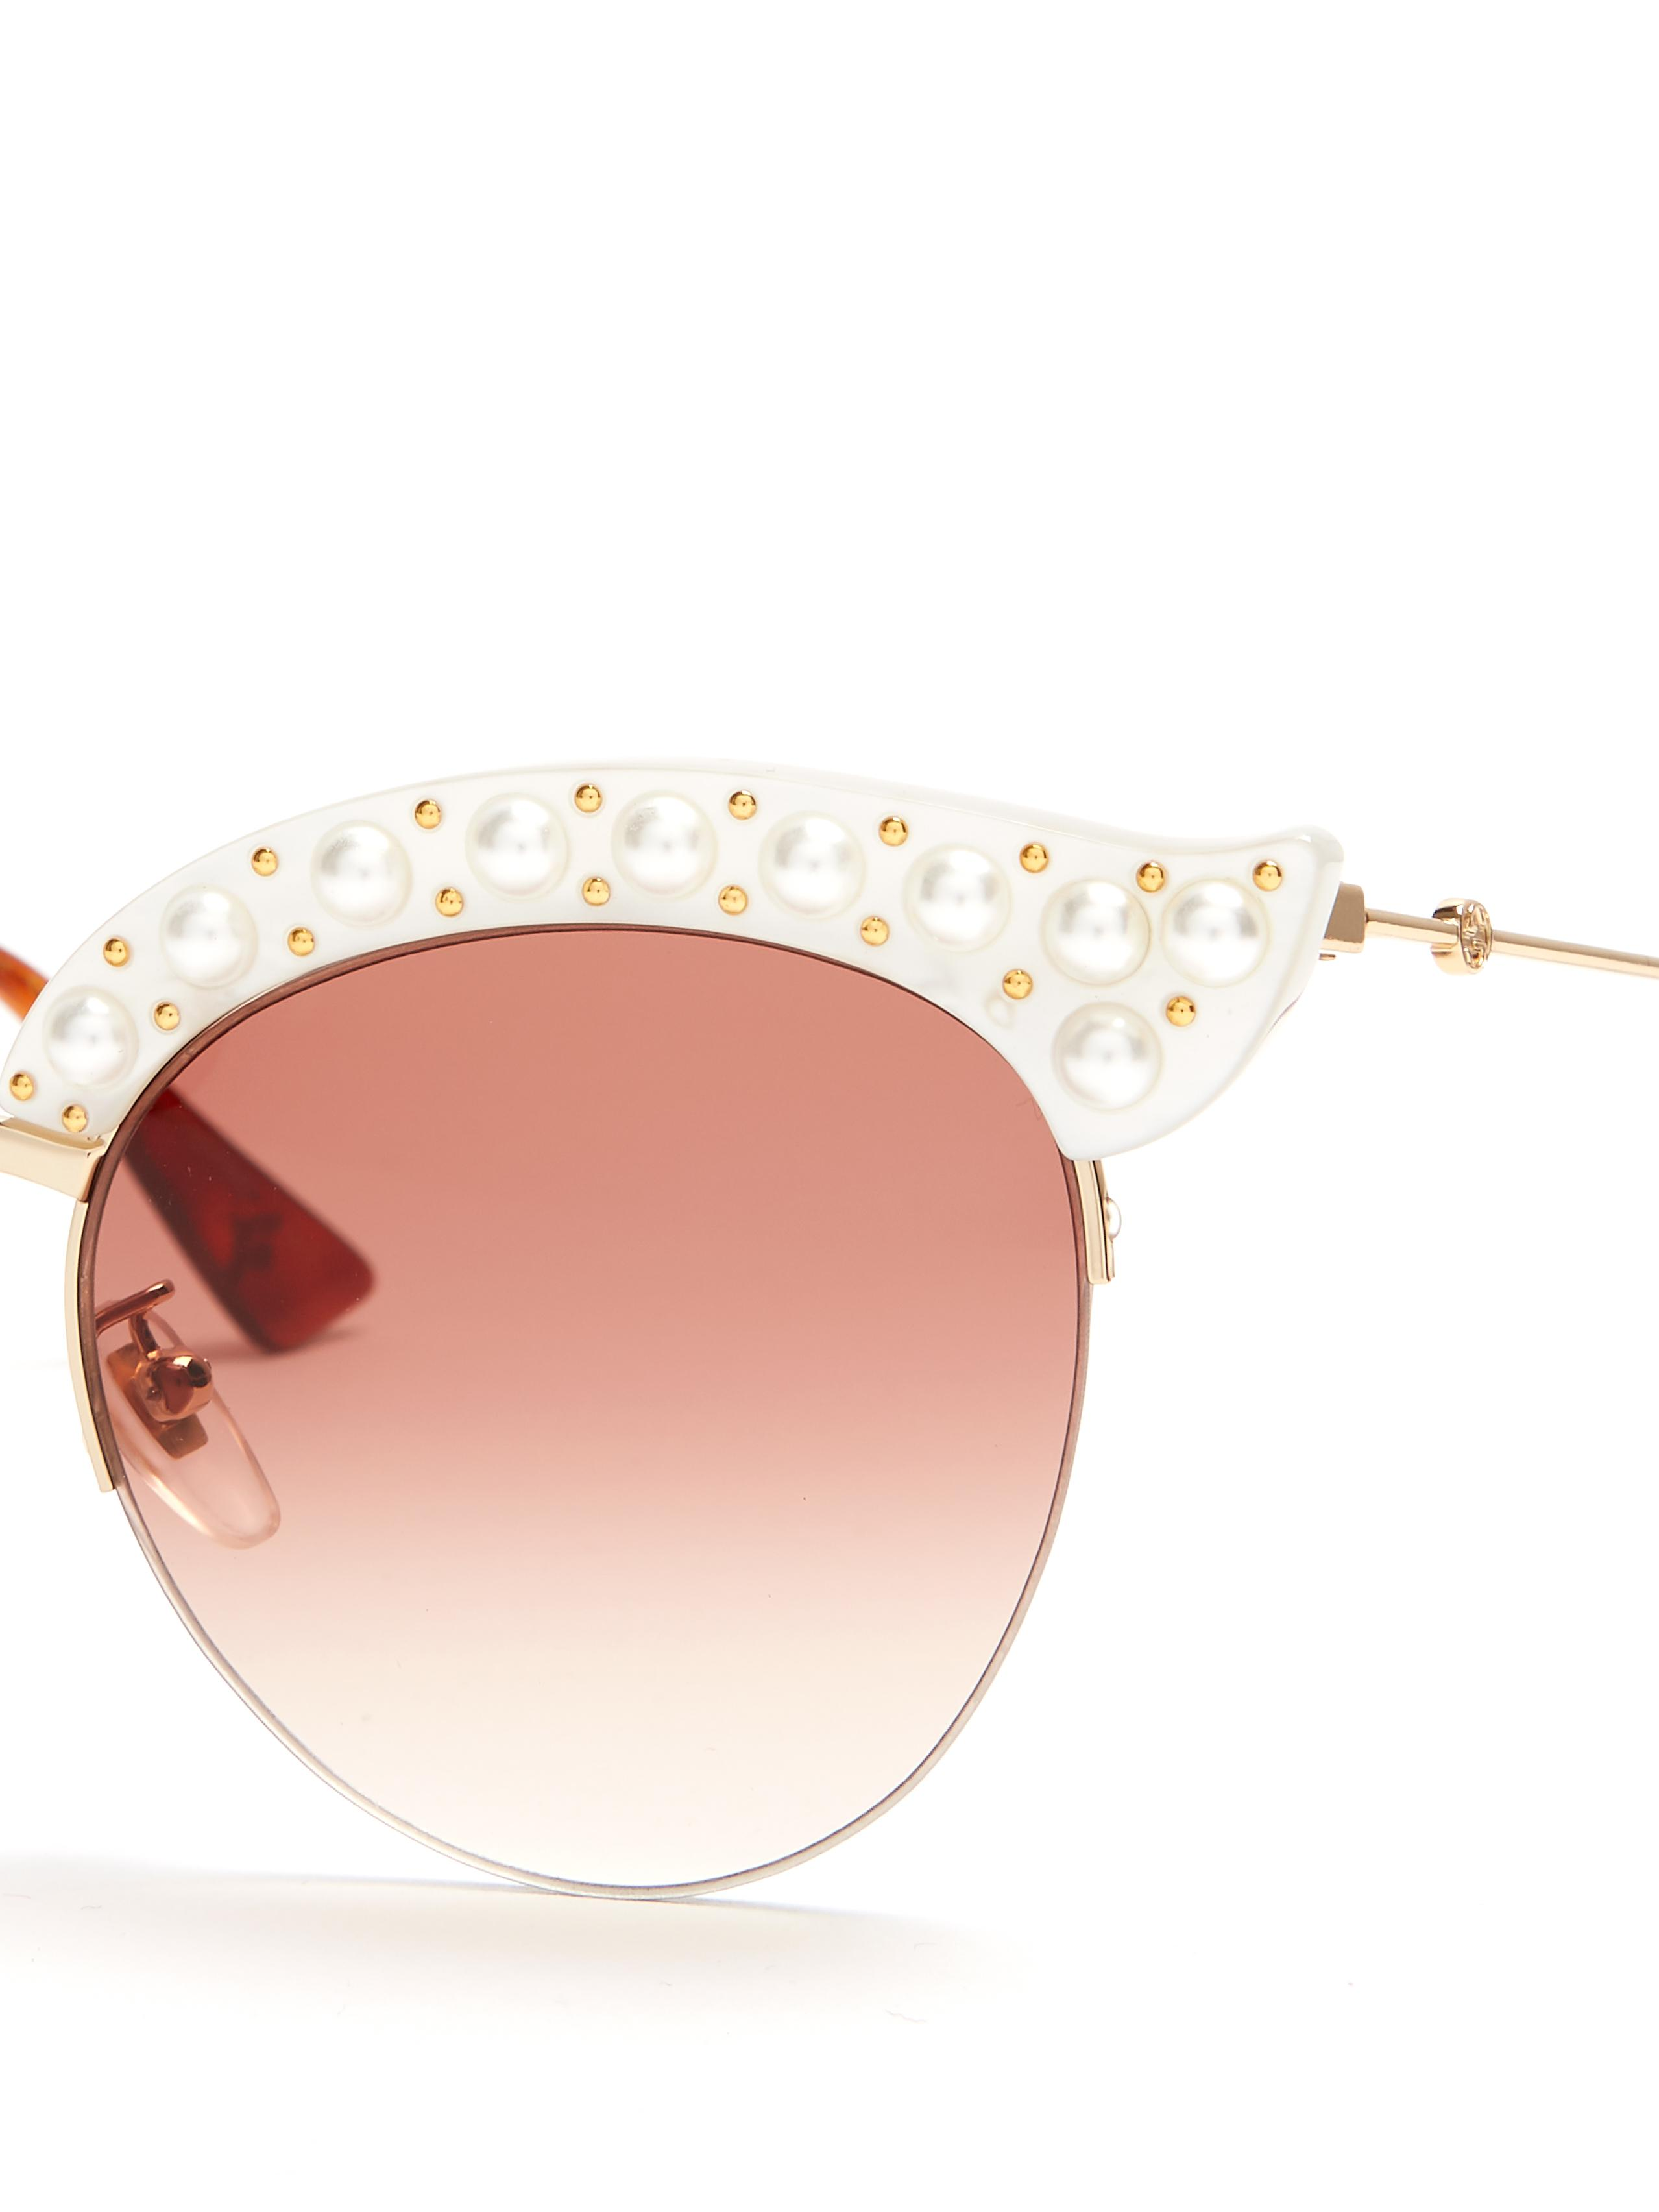 464c51ae666 Gucci Cat-eye Faux-pearl Embellished Metal Sunglasses in White - Lyst